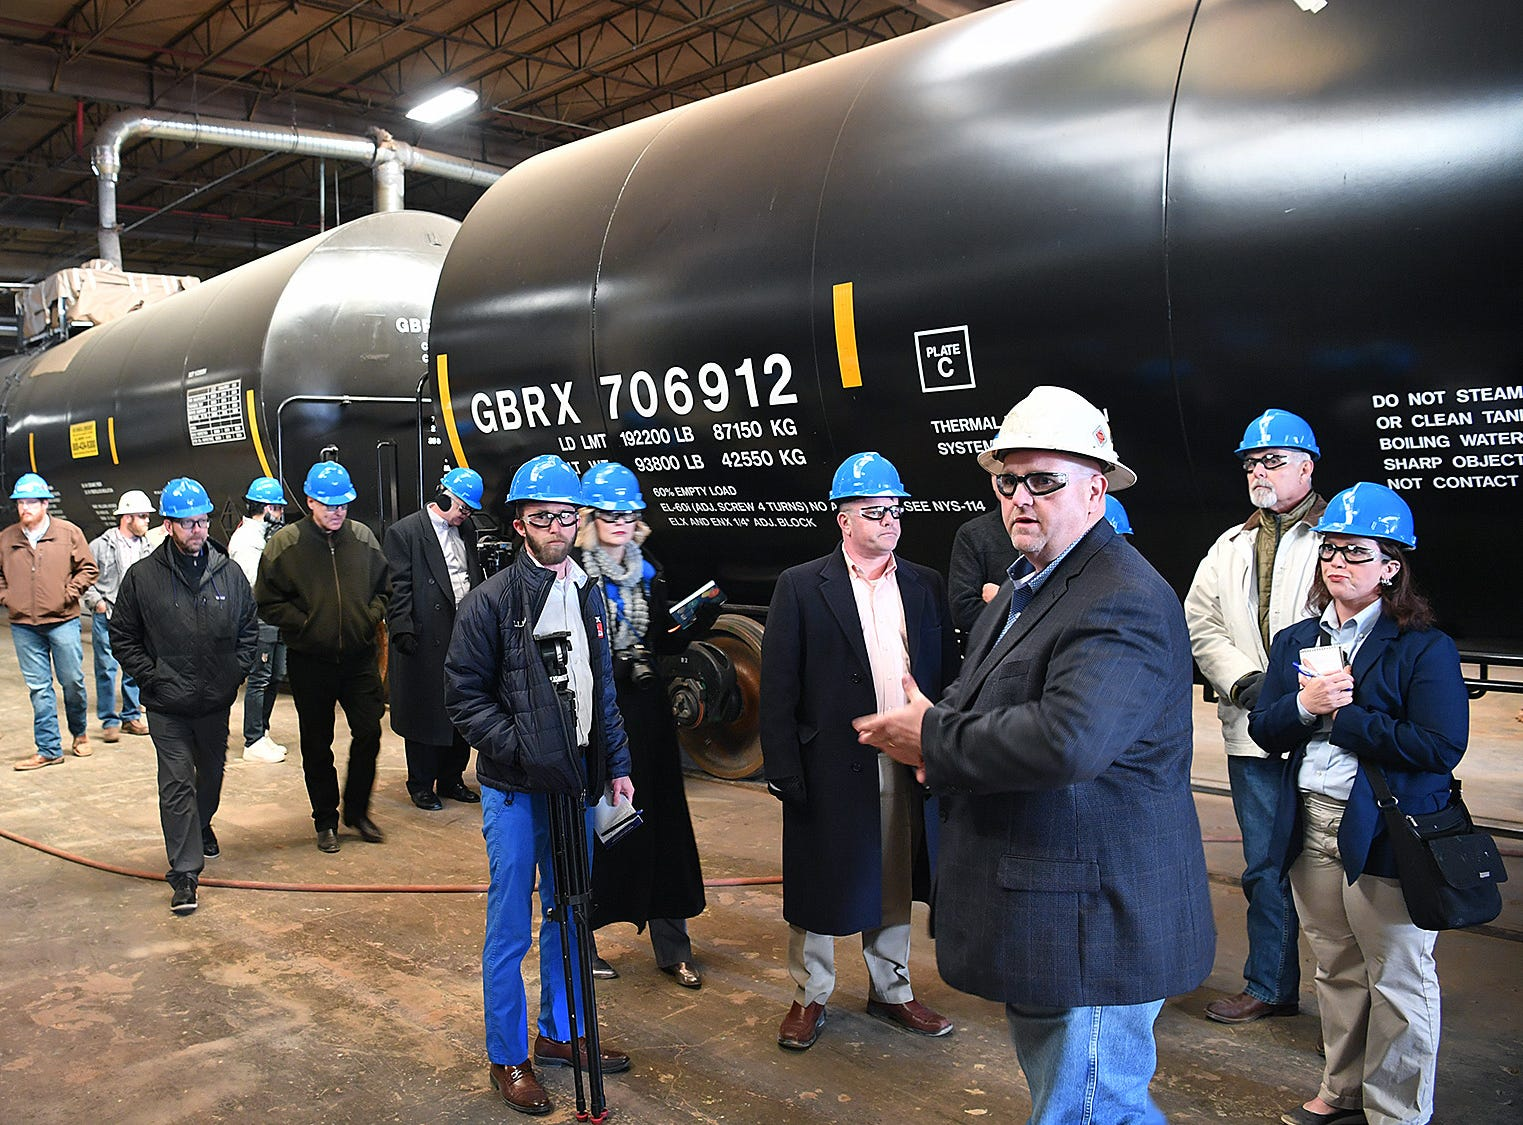 Plant Manager James Bullard, white hardhat, conducts a tour of Eagle Railcar Services for community leaders and the media Friday morning.